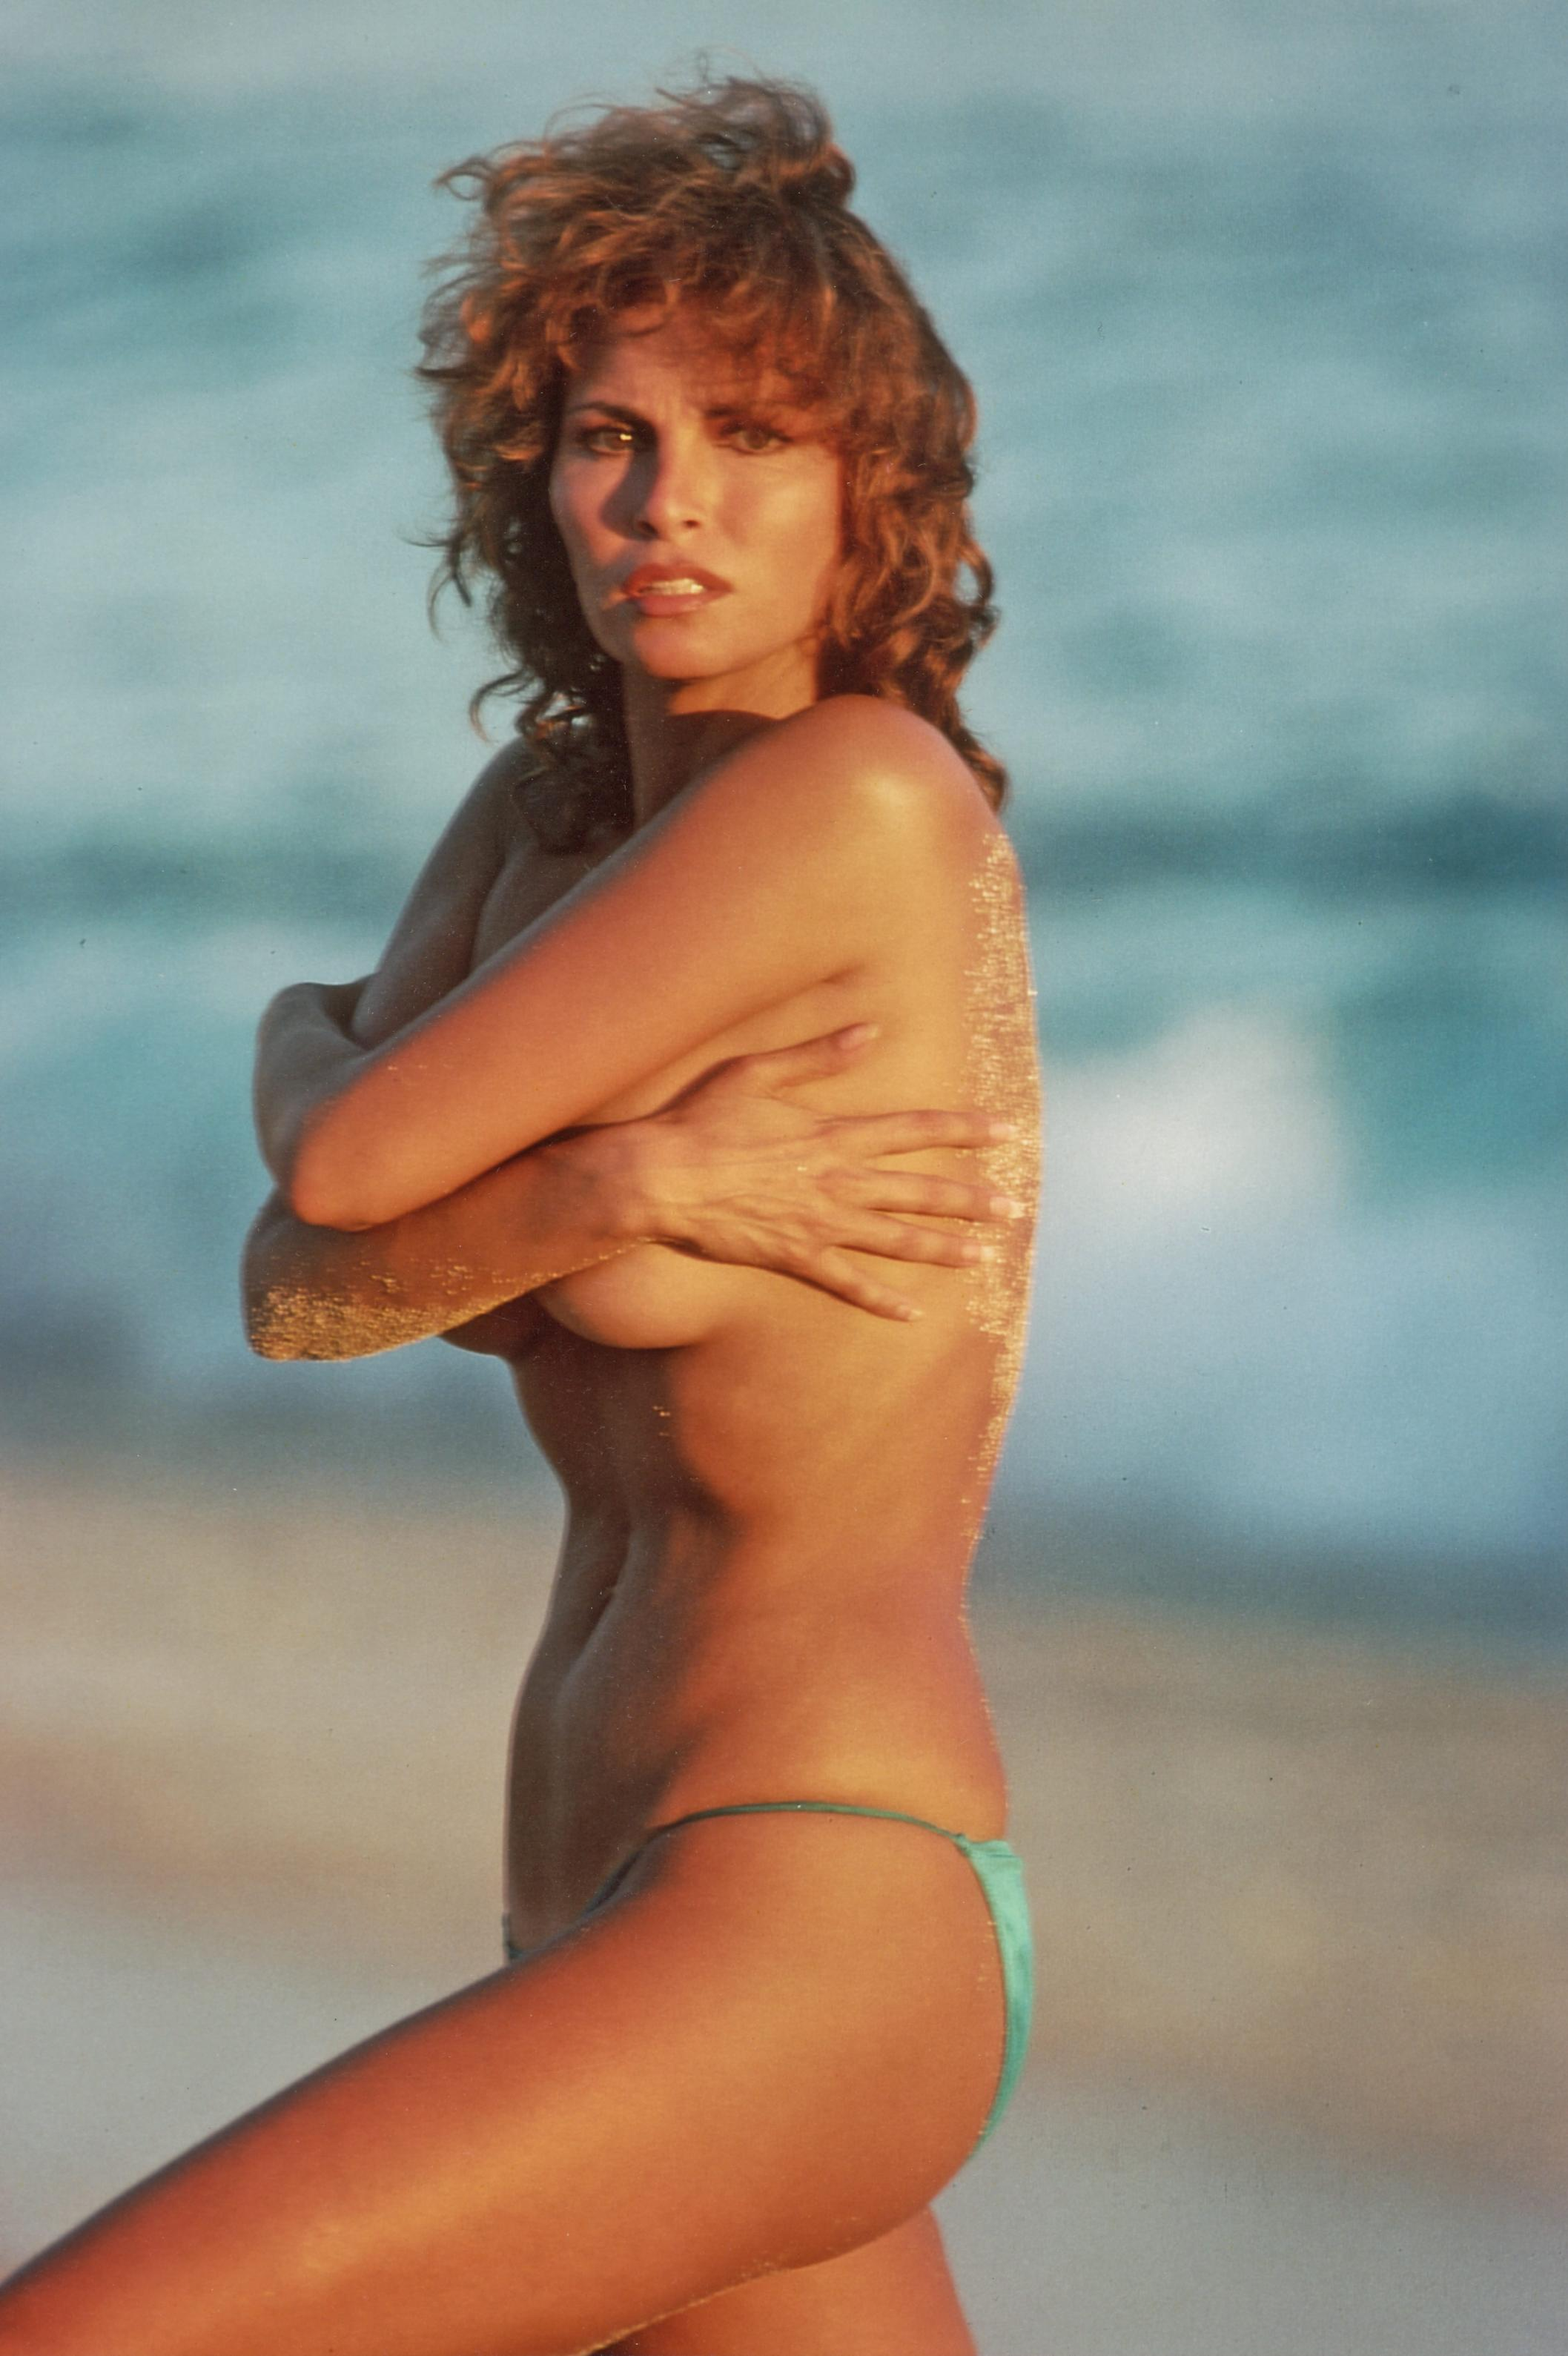 Nudes Raquel Welch nudes (63 foto and video), Sexy, Fappening, Feet, cameltoe 2006